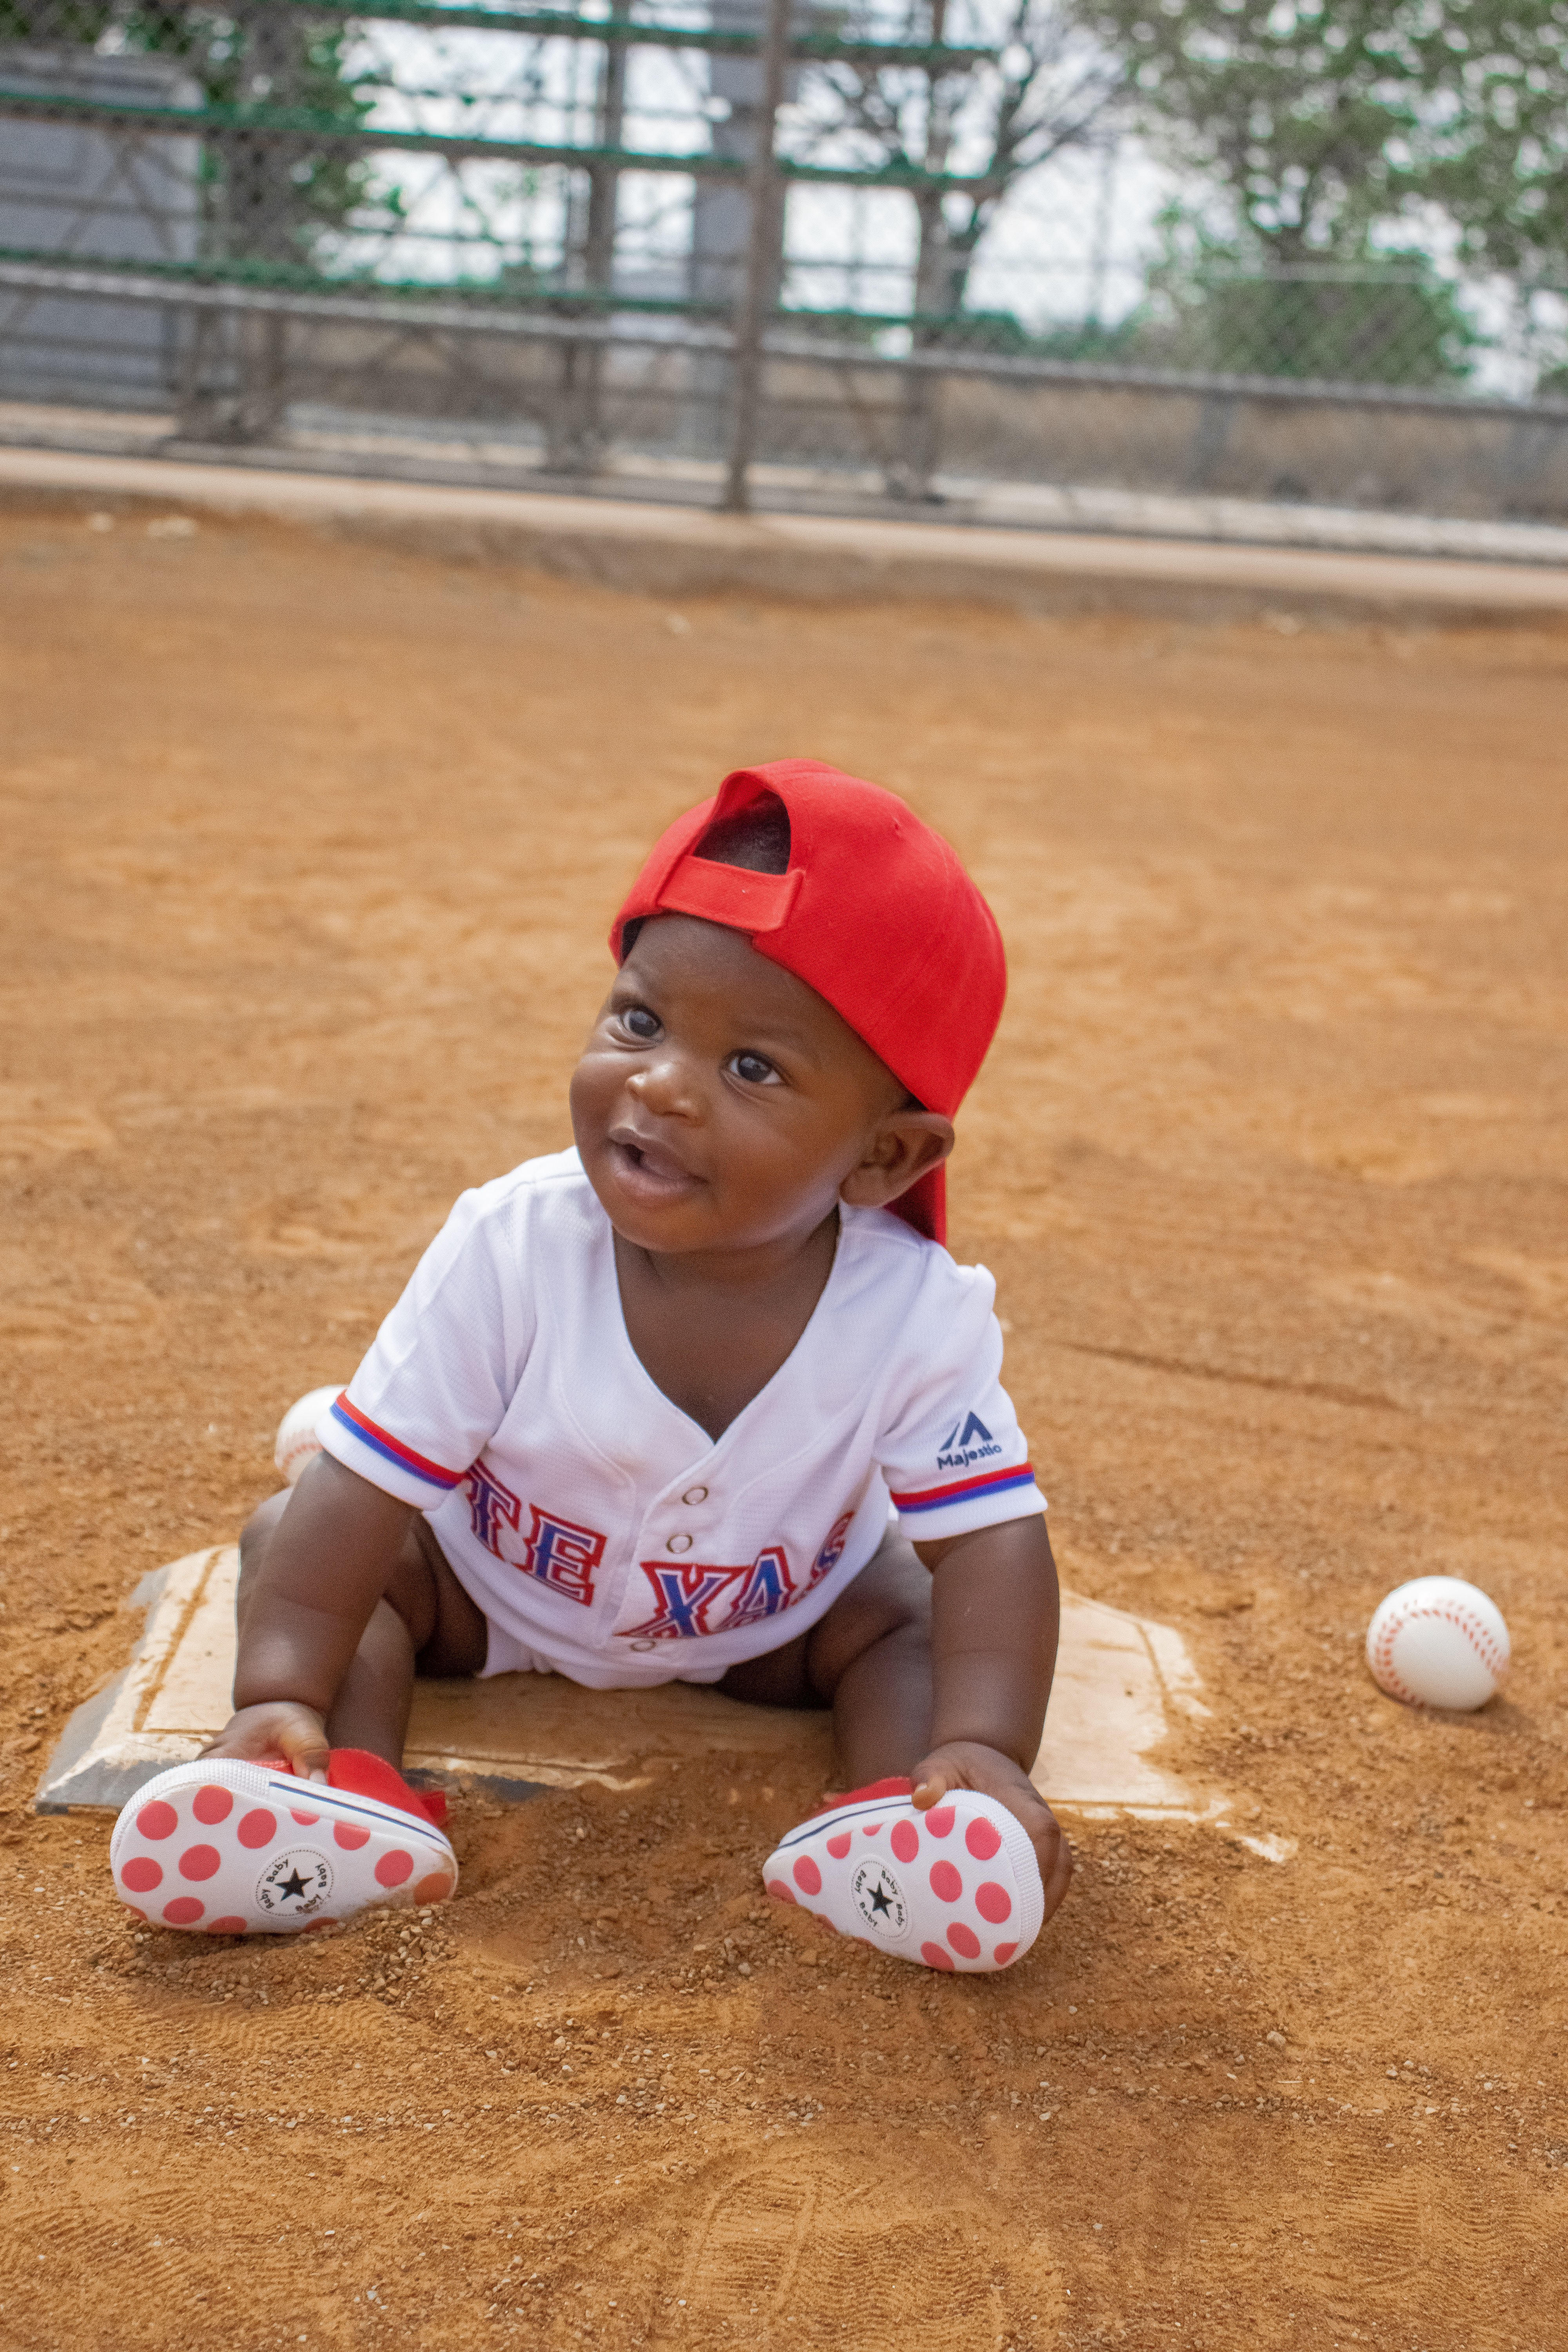 Baby boy in Texas Rangers Jersey  and red hat